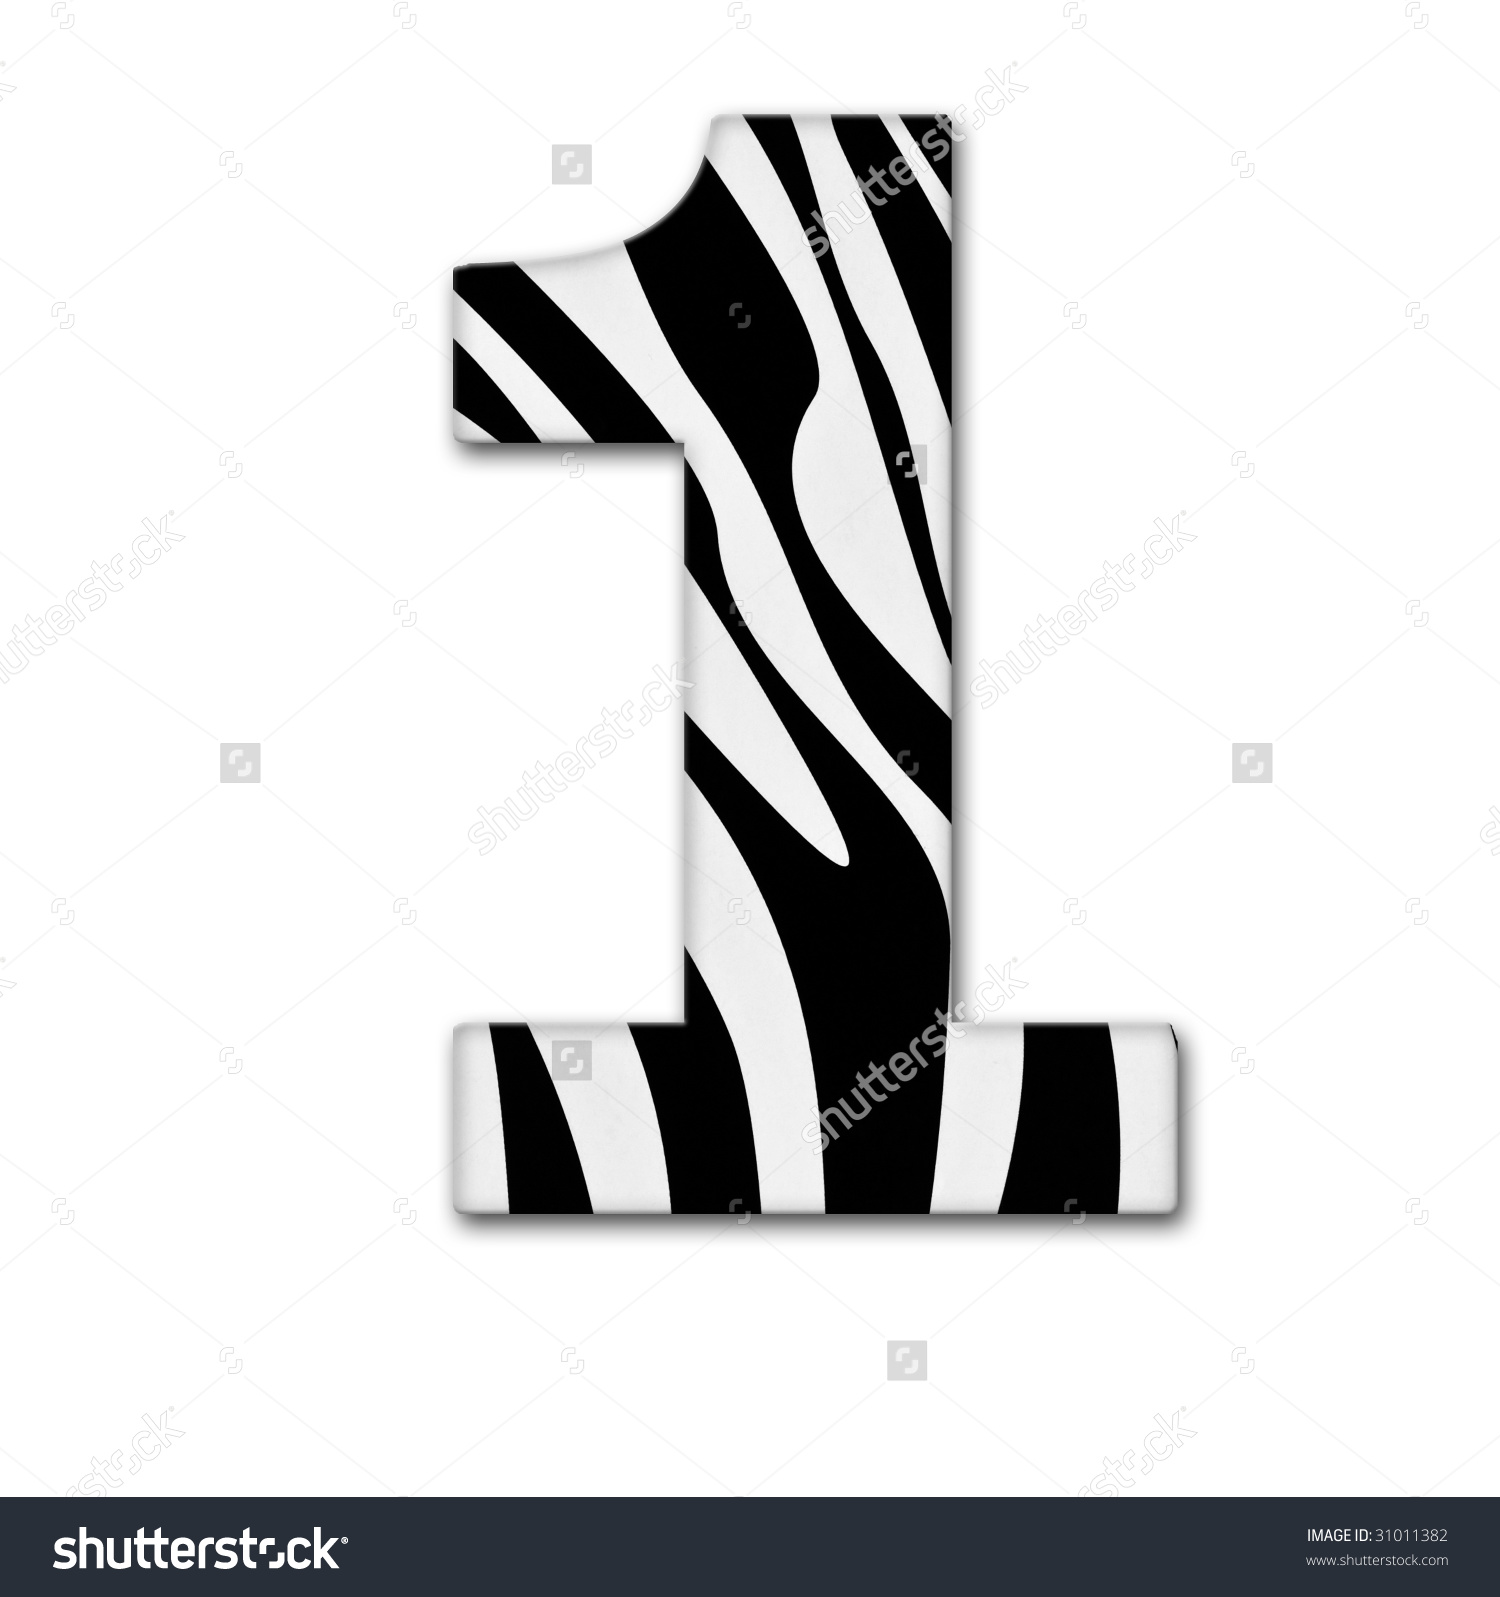 Zebra clipart number 1 Print Clipart clipart Numbers (35+)